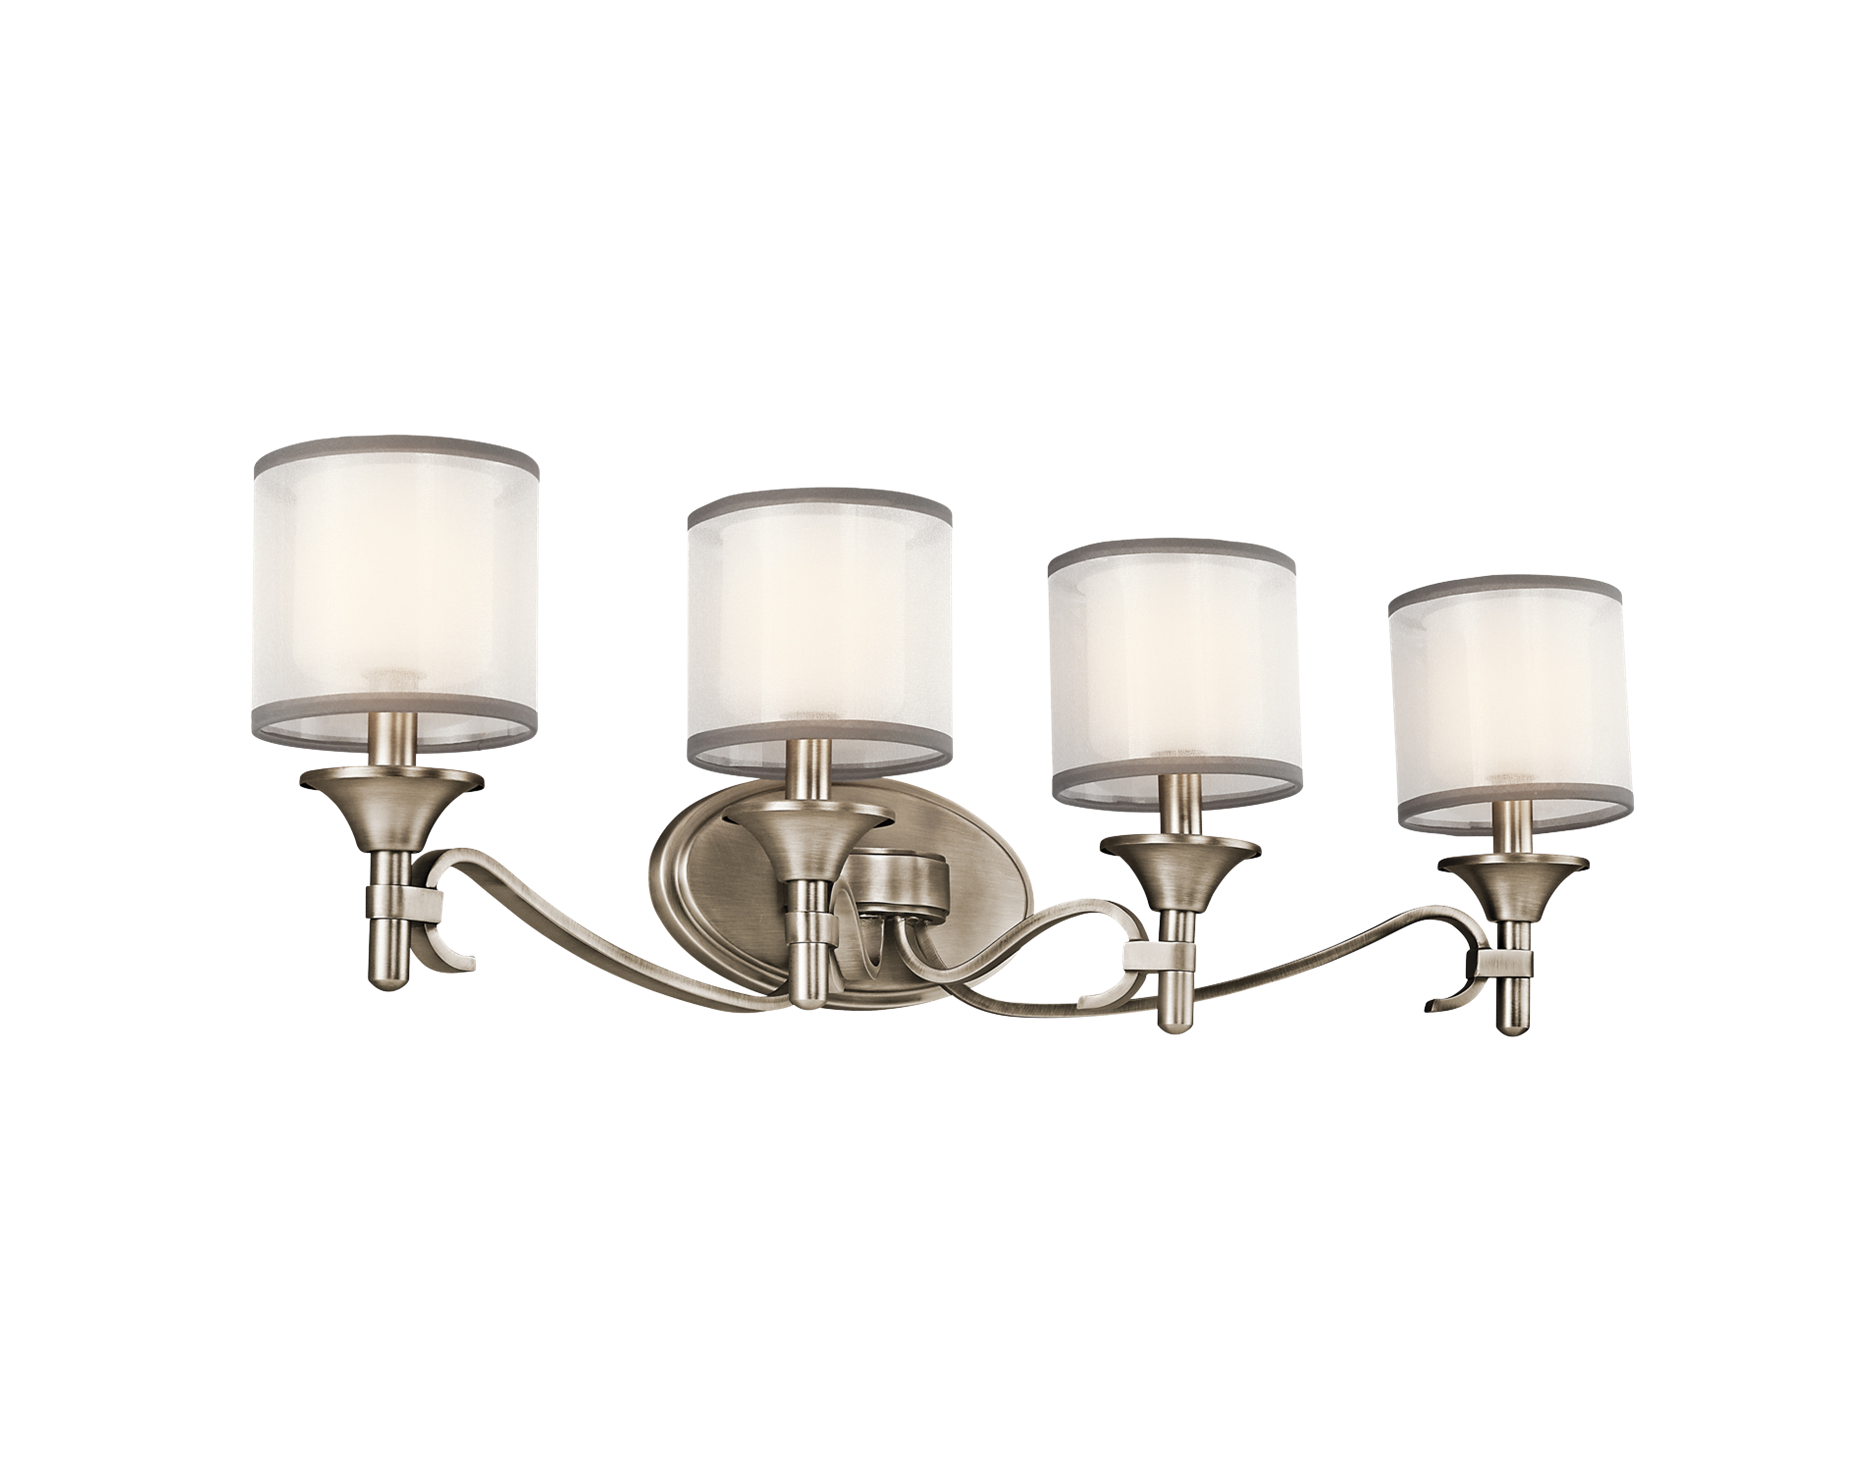 Talista 4 Light Antique Bronze Bath Vanity Light With: Lacey Collection 4 Light Bath Fixture In Antique Pewter